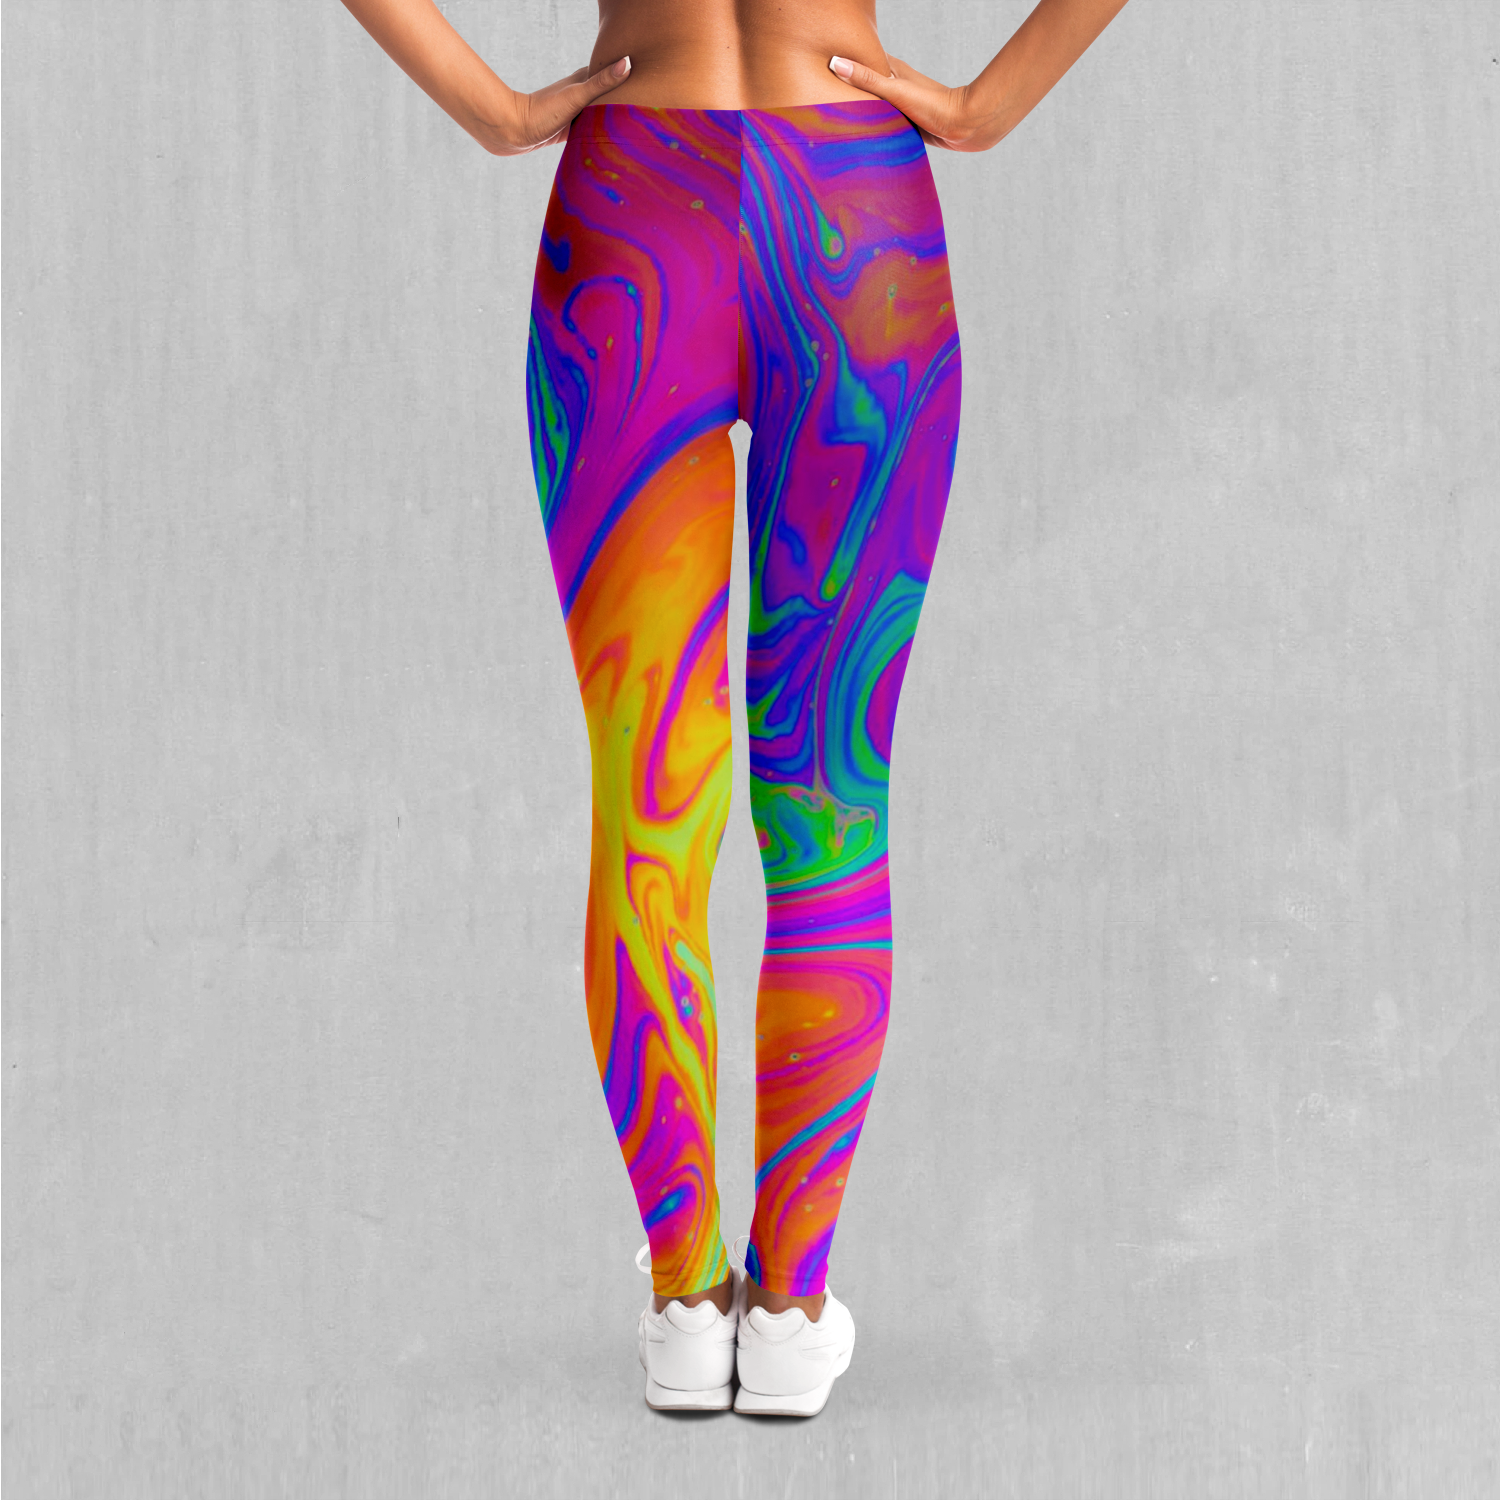 Acidic Drip Leggings - Azimuth Clothing